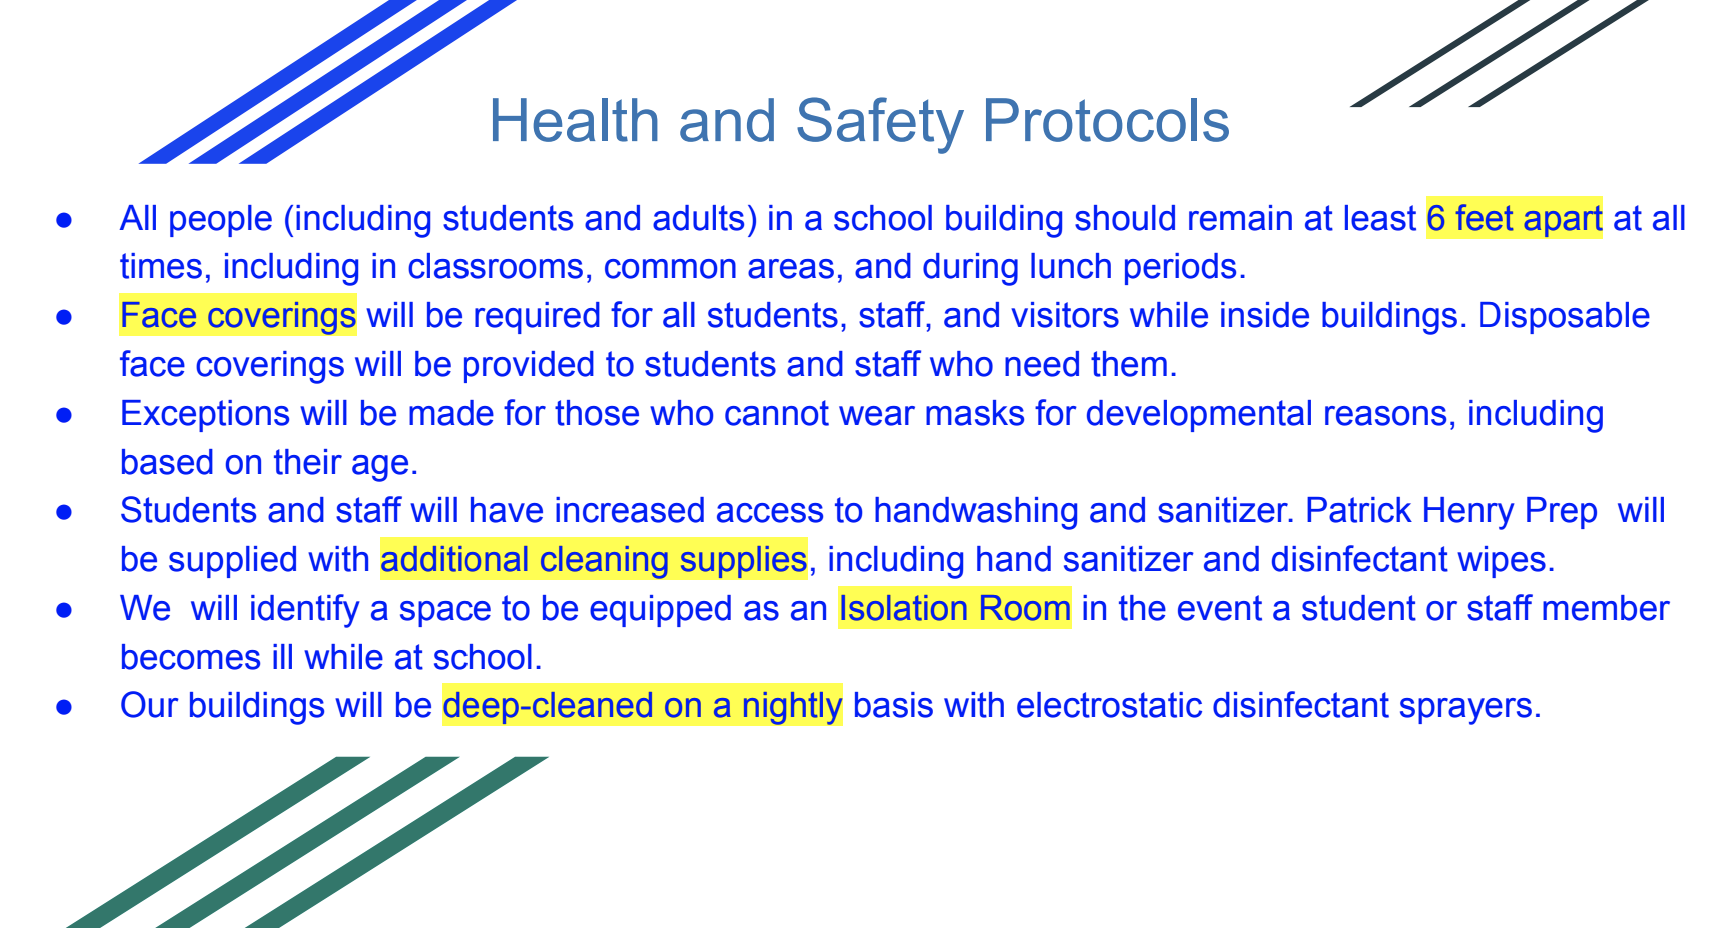 A list of health and safety protocols